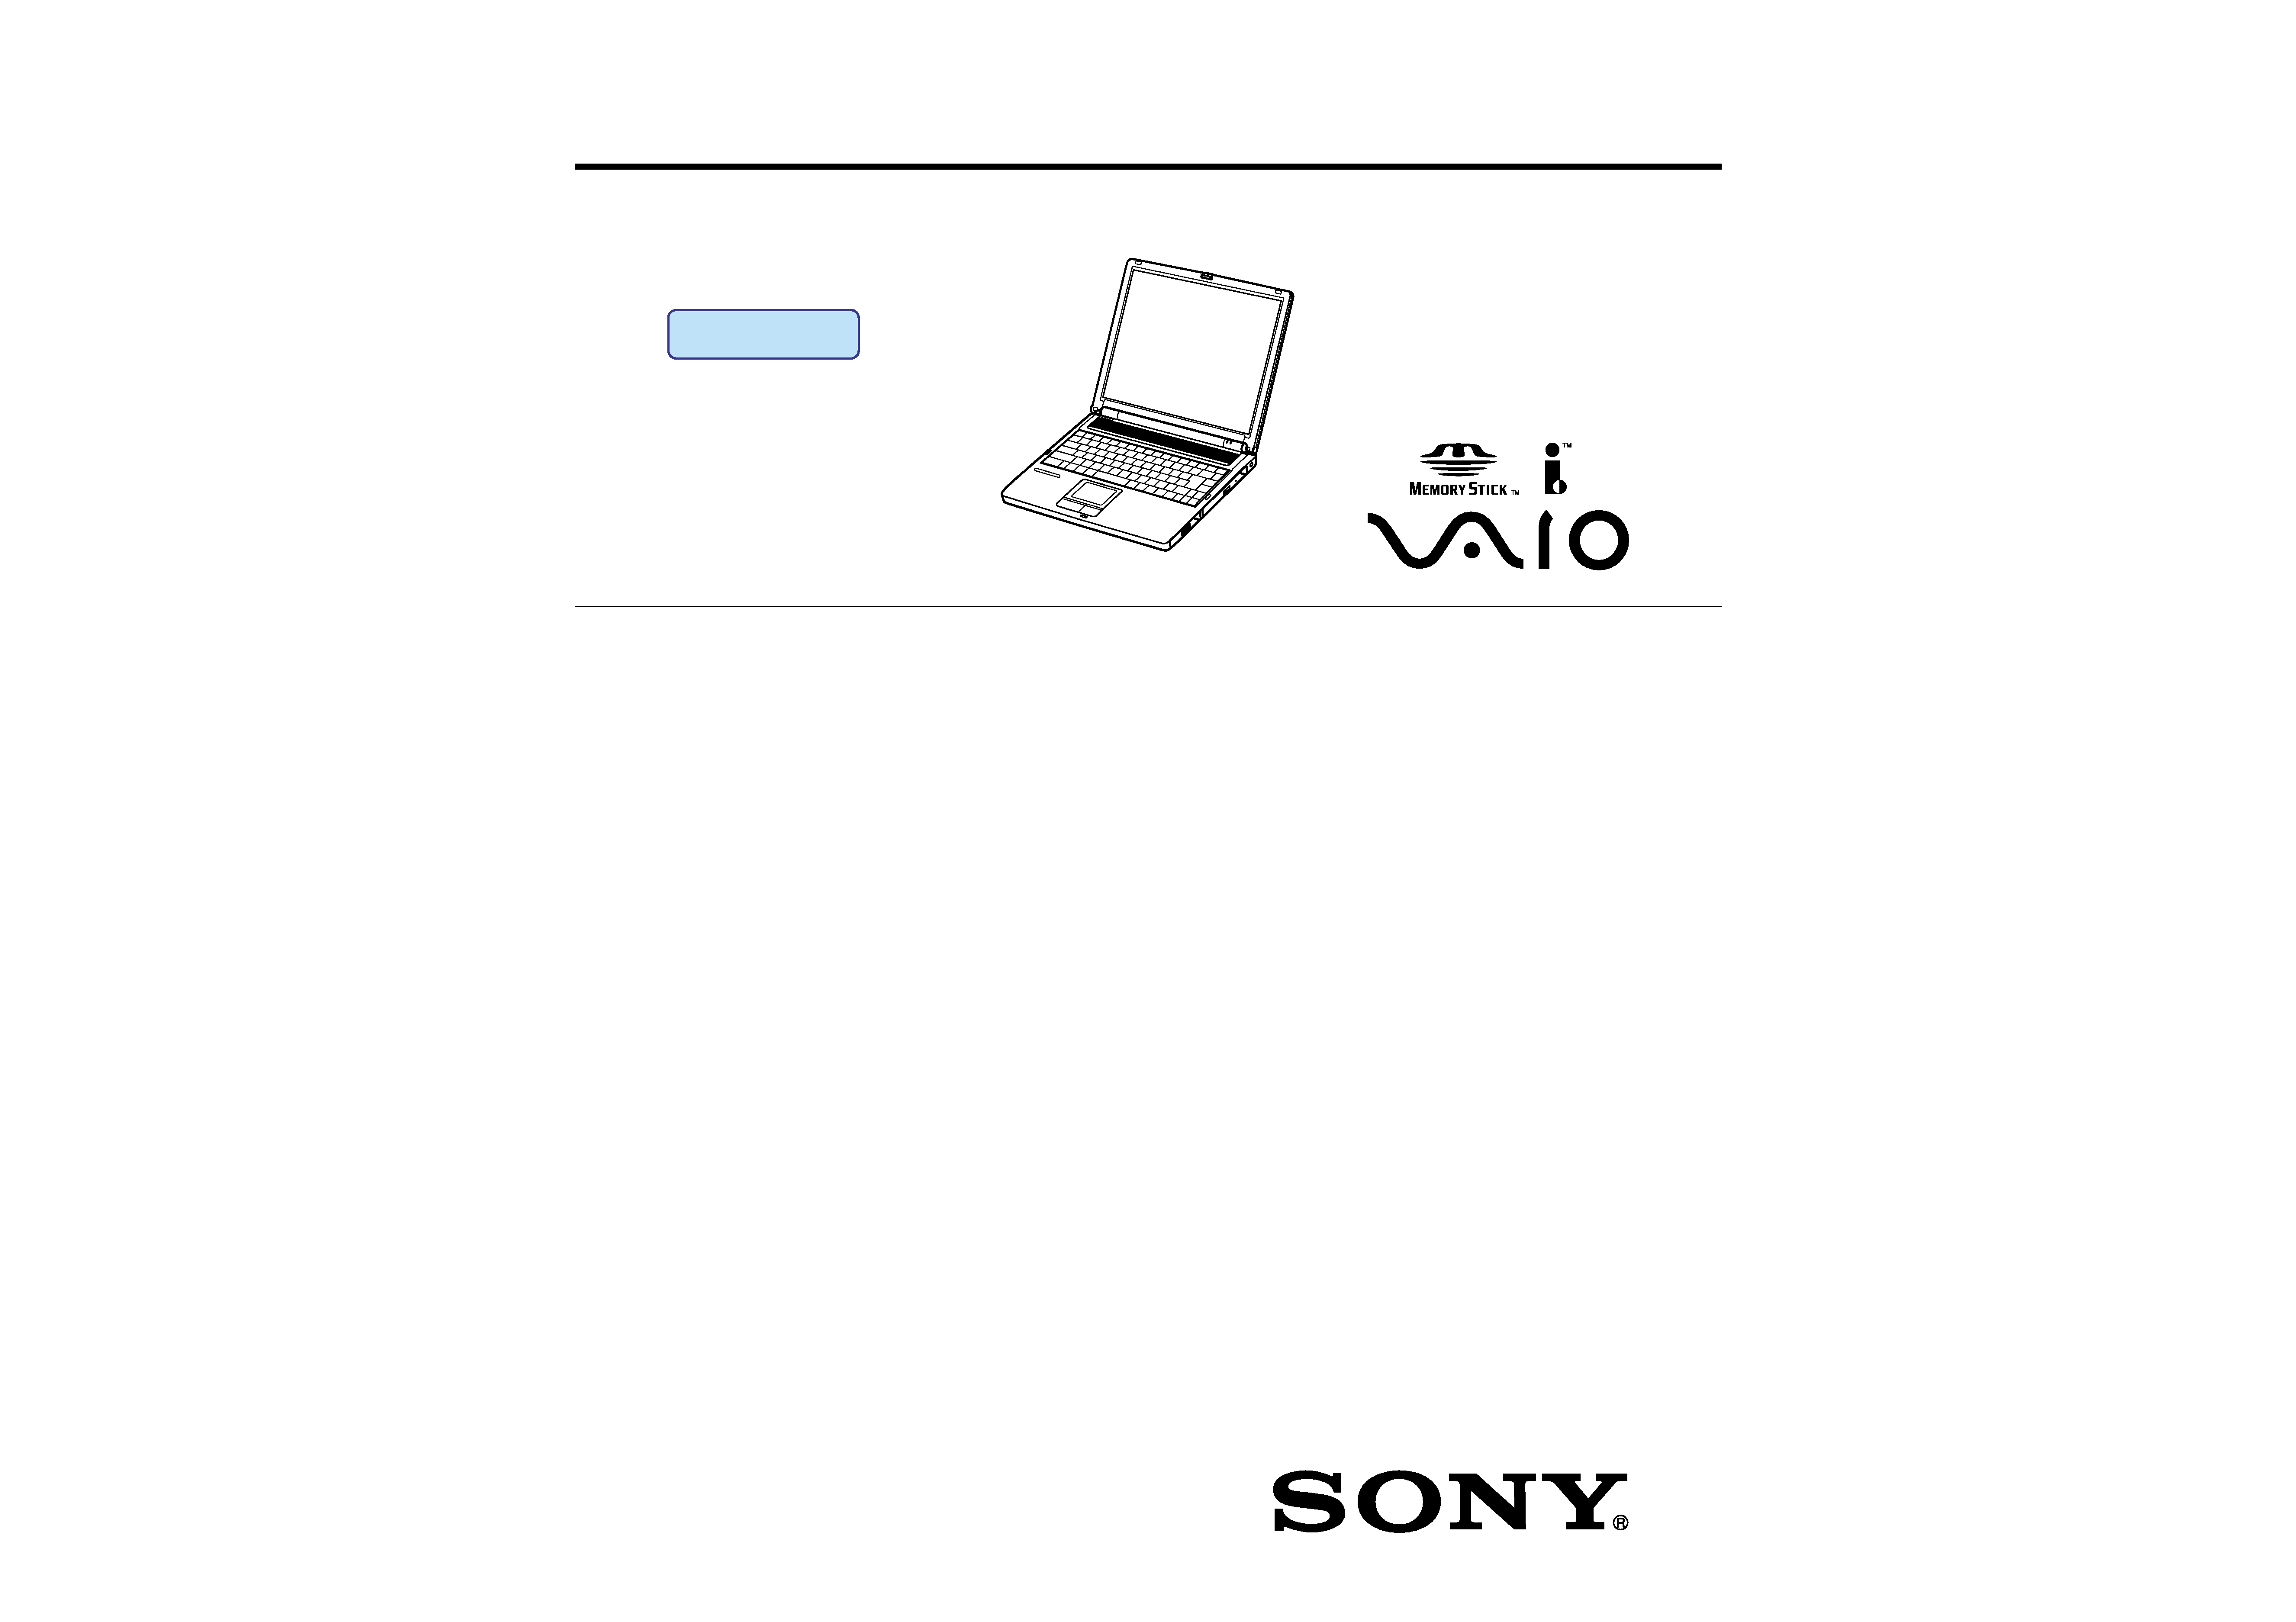 Sony Picturebook Pcg C1vn Service Manual